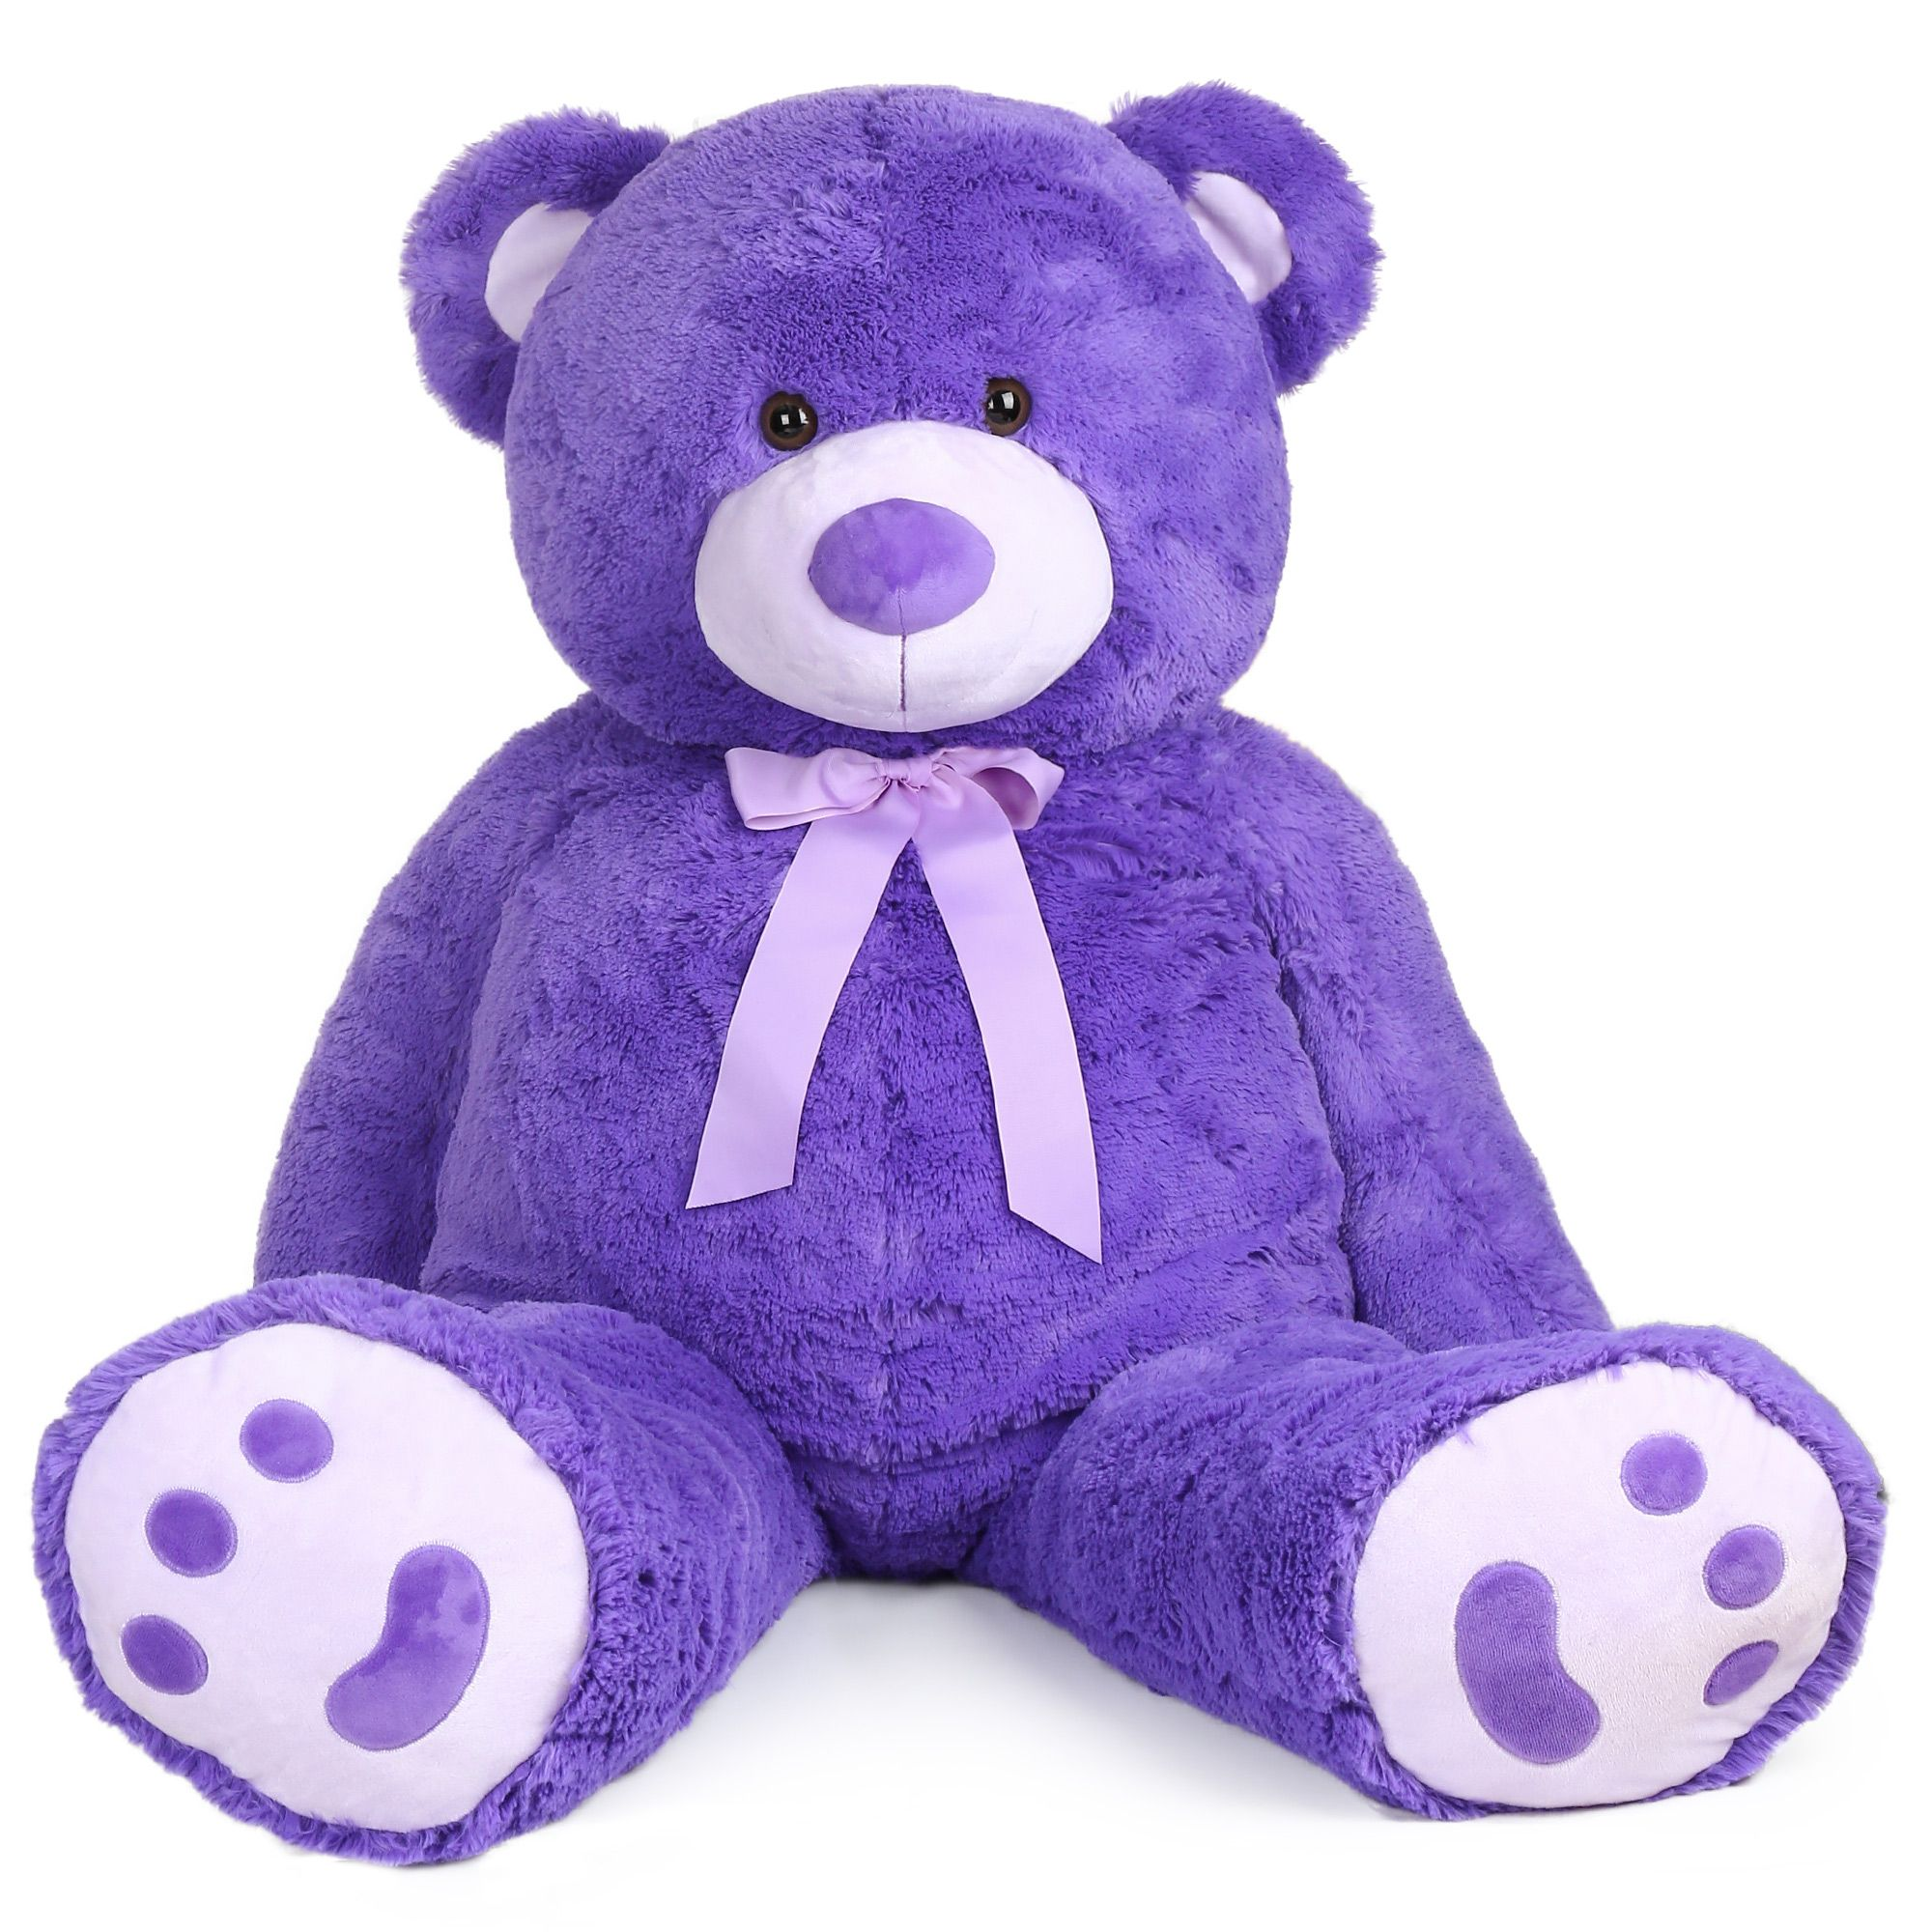 6 Ft Giant Teddy Bear Huge Stuffed Plush Animals Toy Birthday Mother/'s Gift 72/""